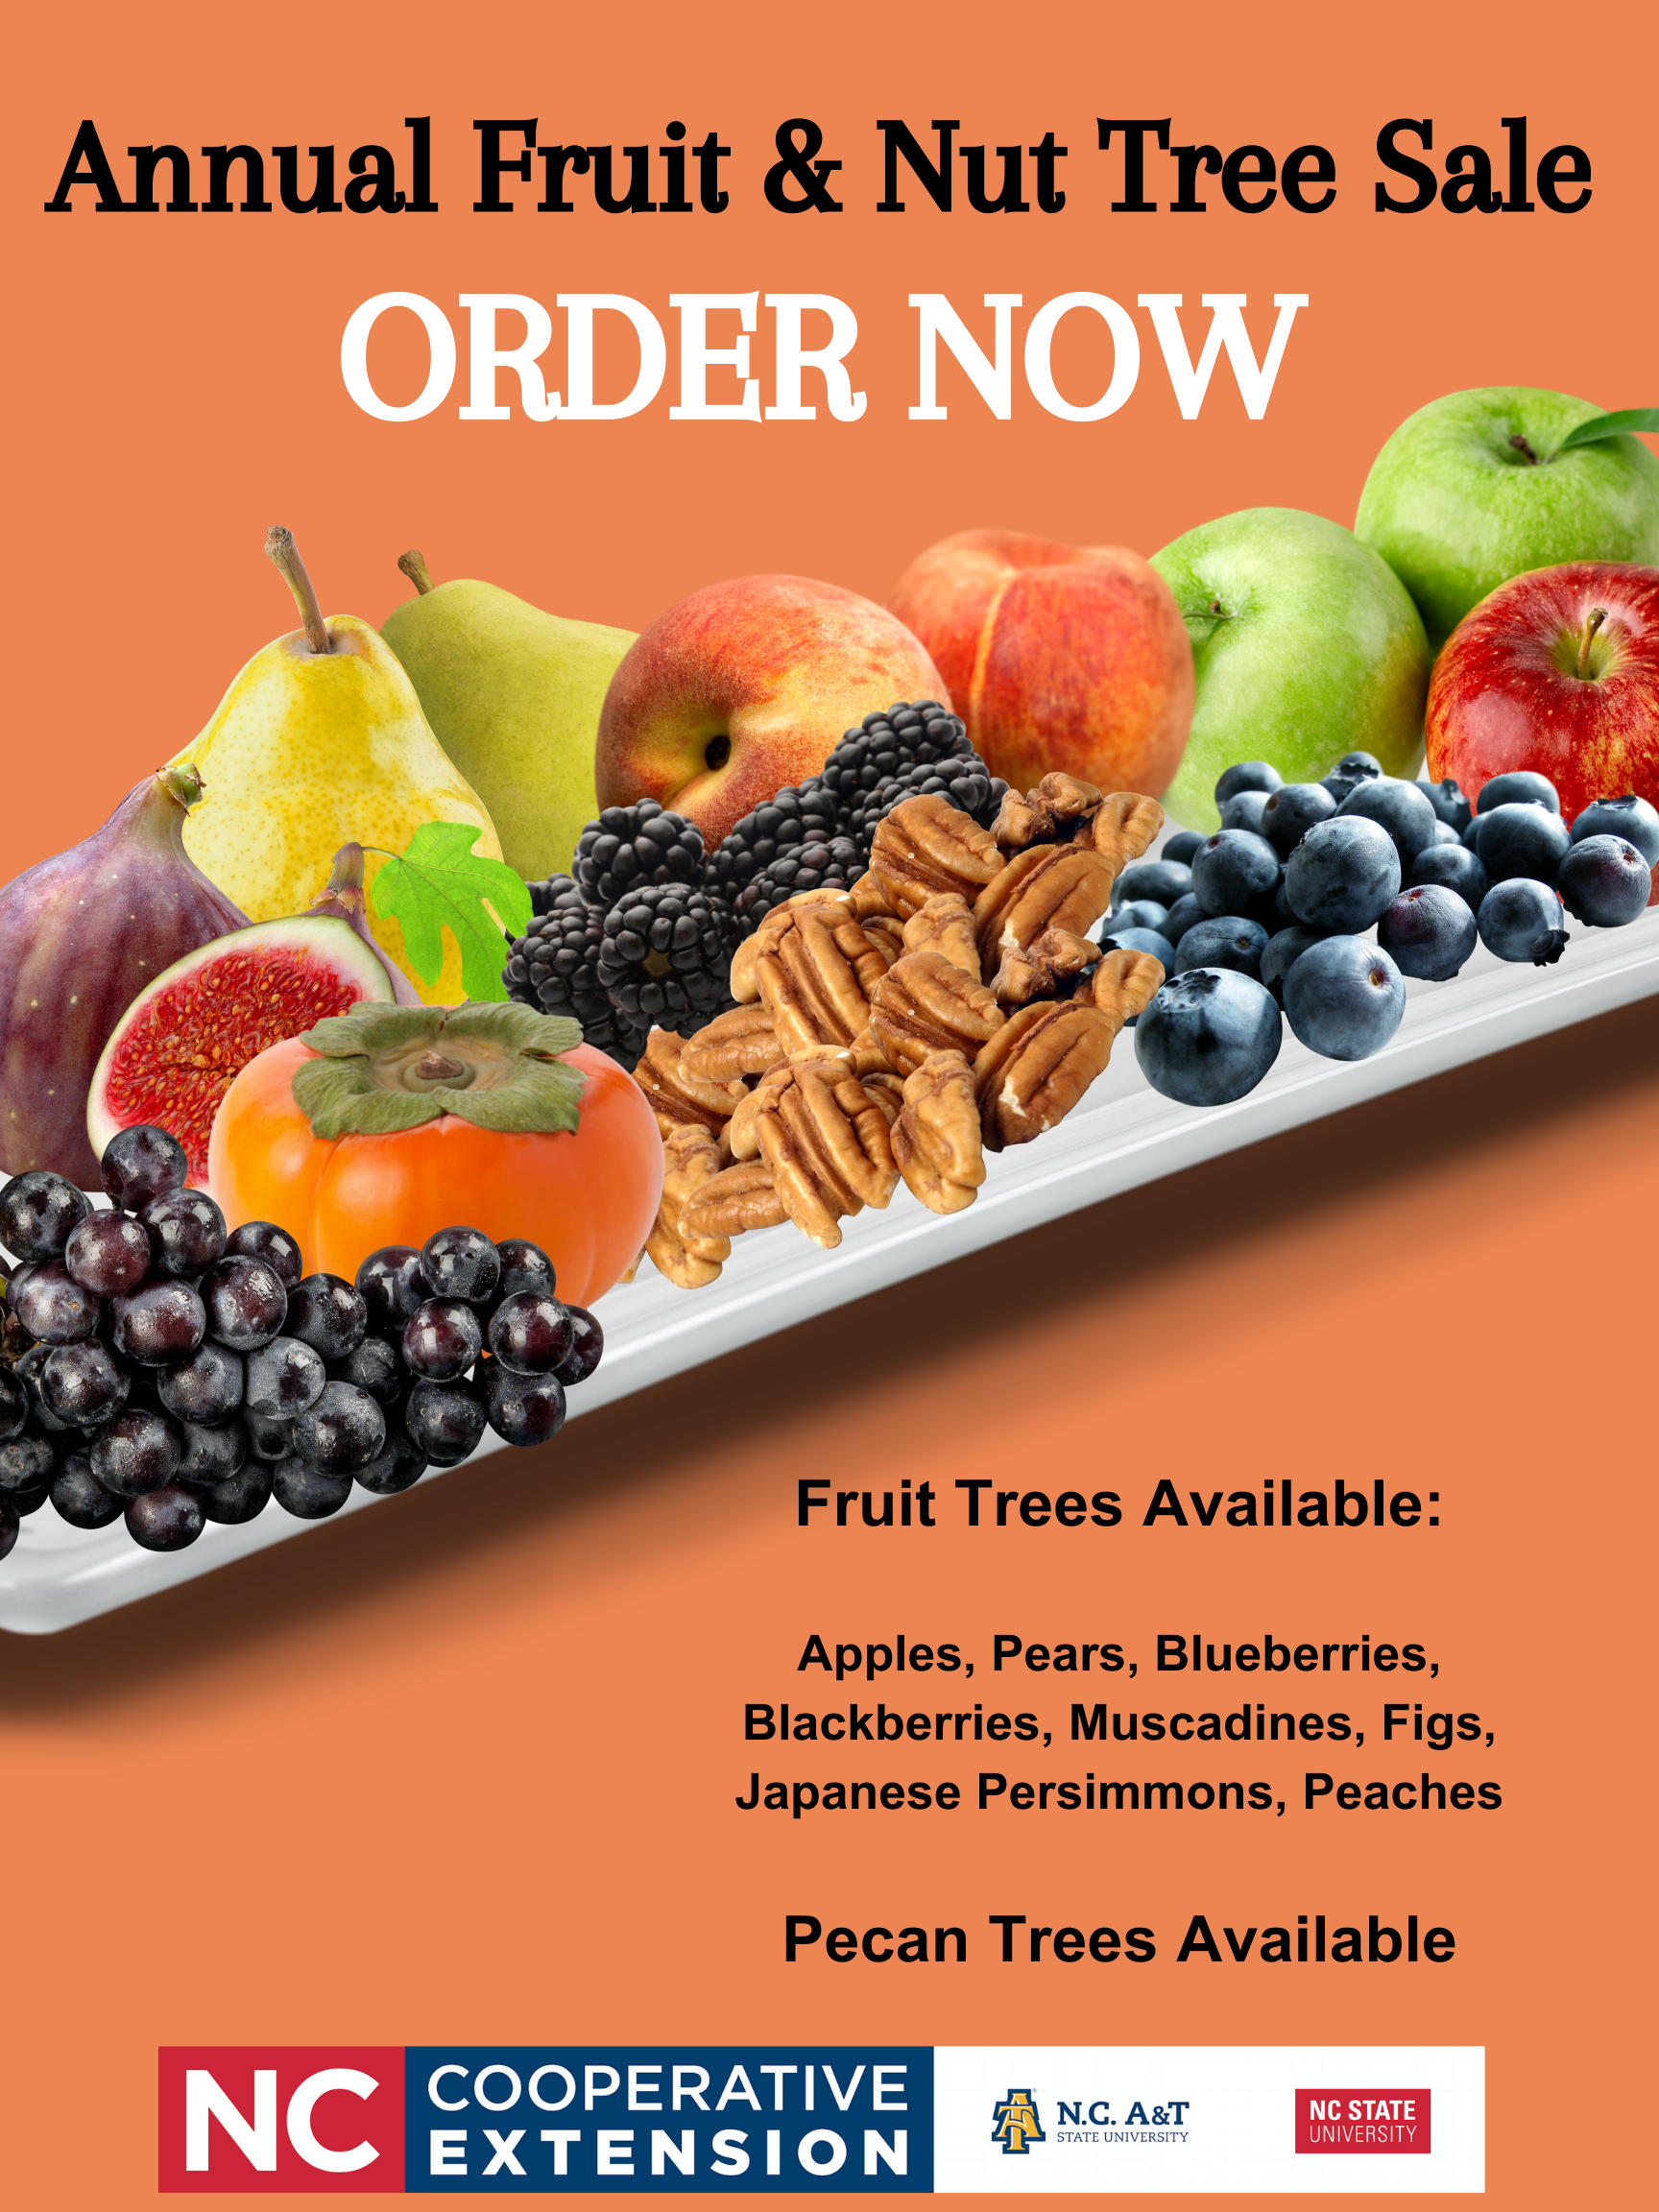 Fruit & Nut Tree Sale Flyer with various pictures of fruit we have for sale